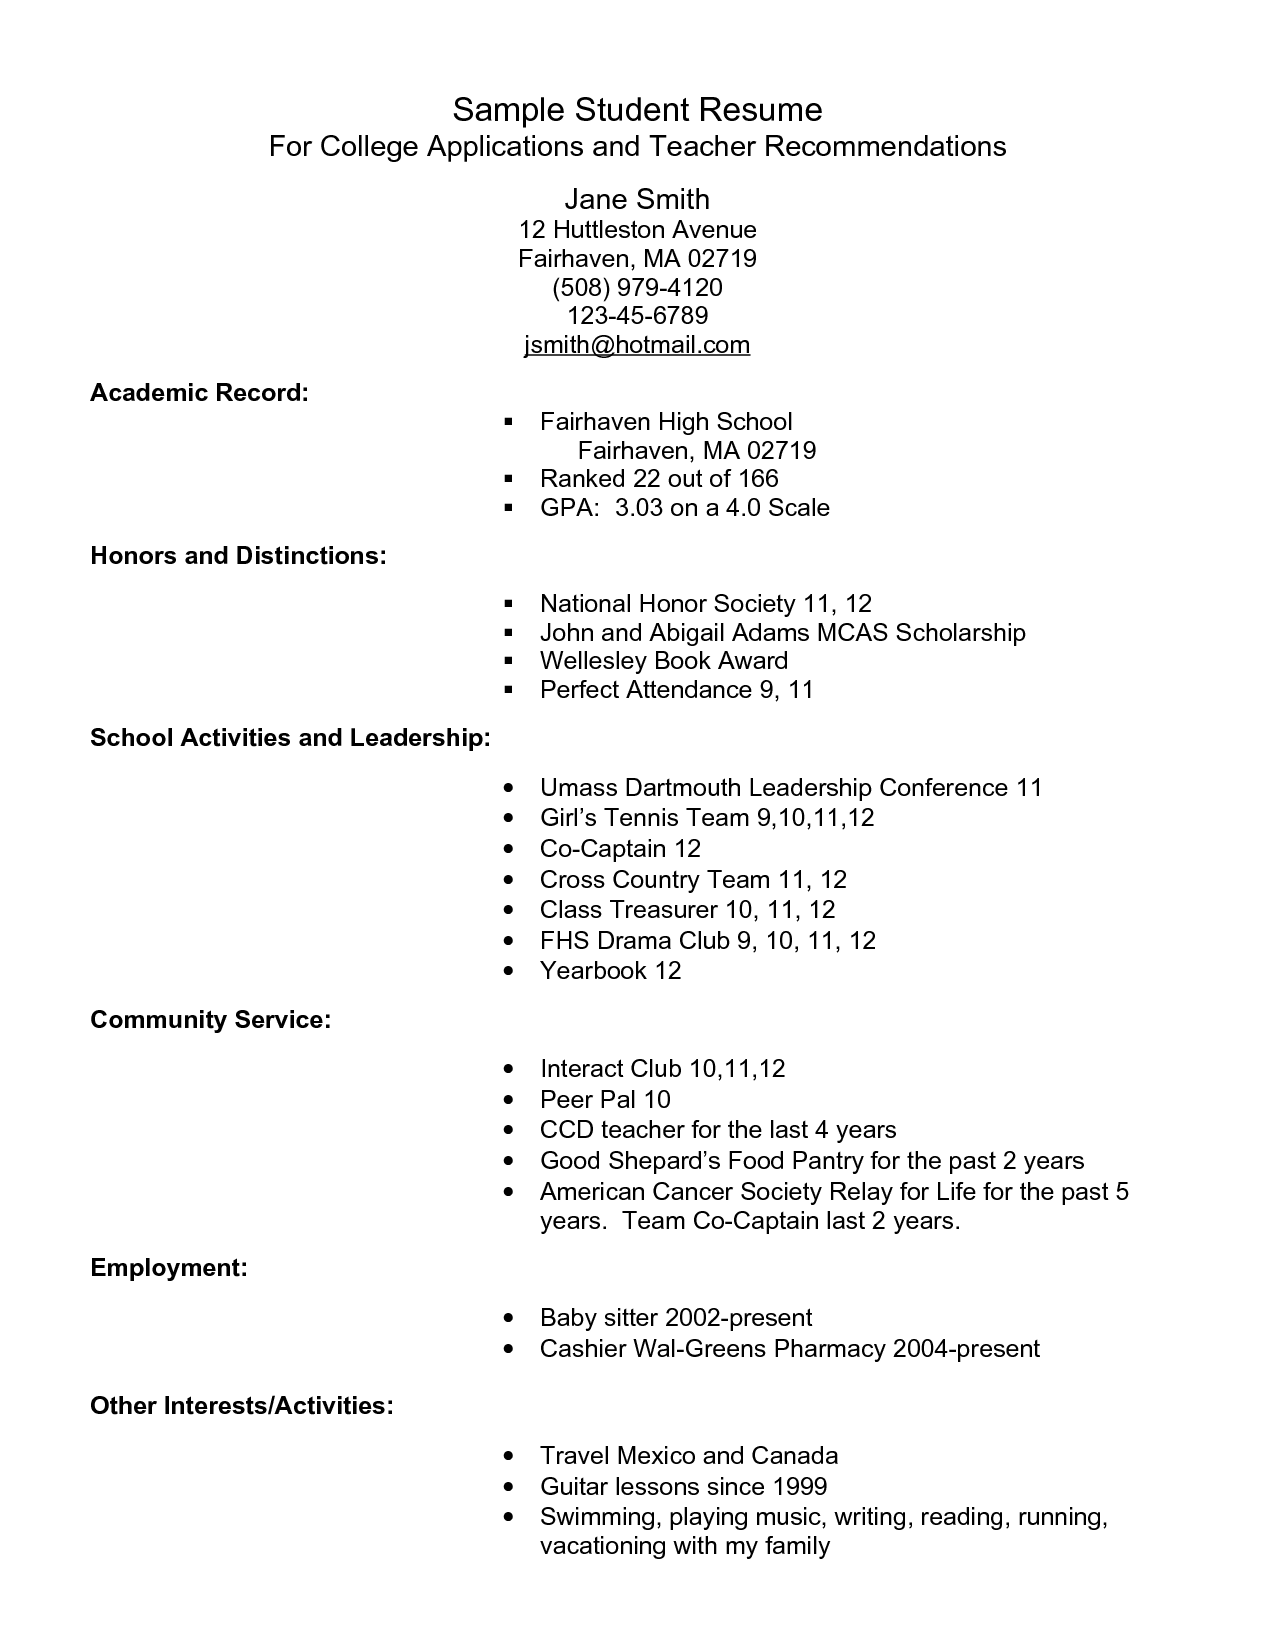 Traditional Resume Templates Example Resume For High School Students For College Applications